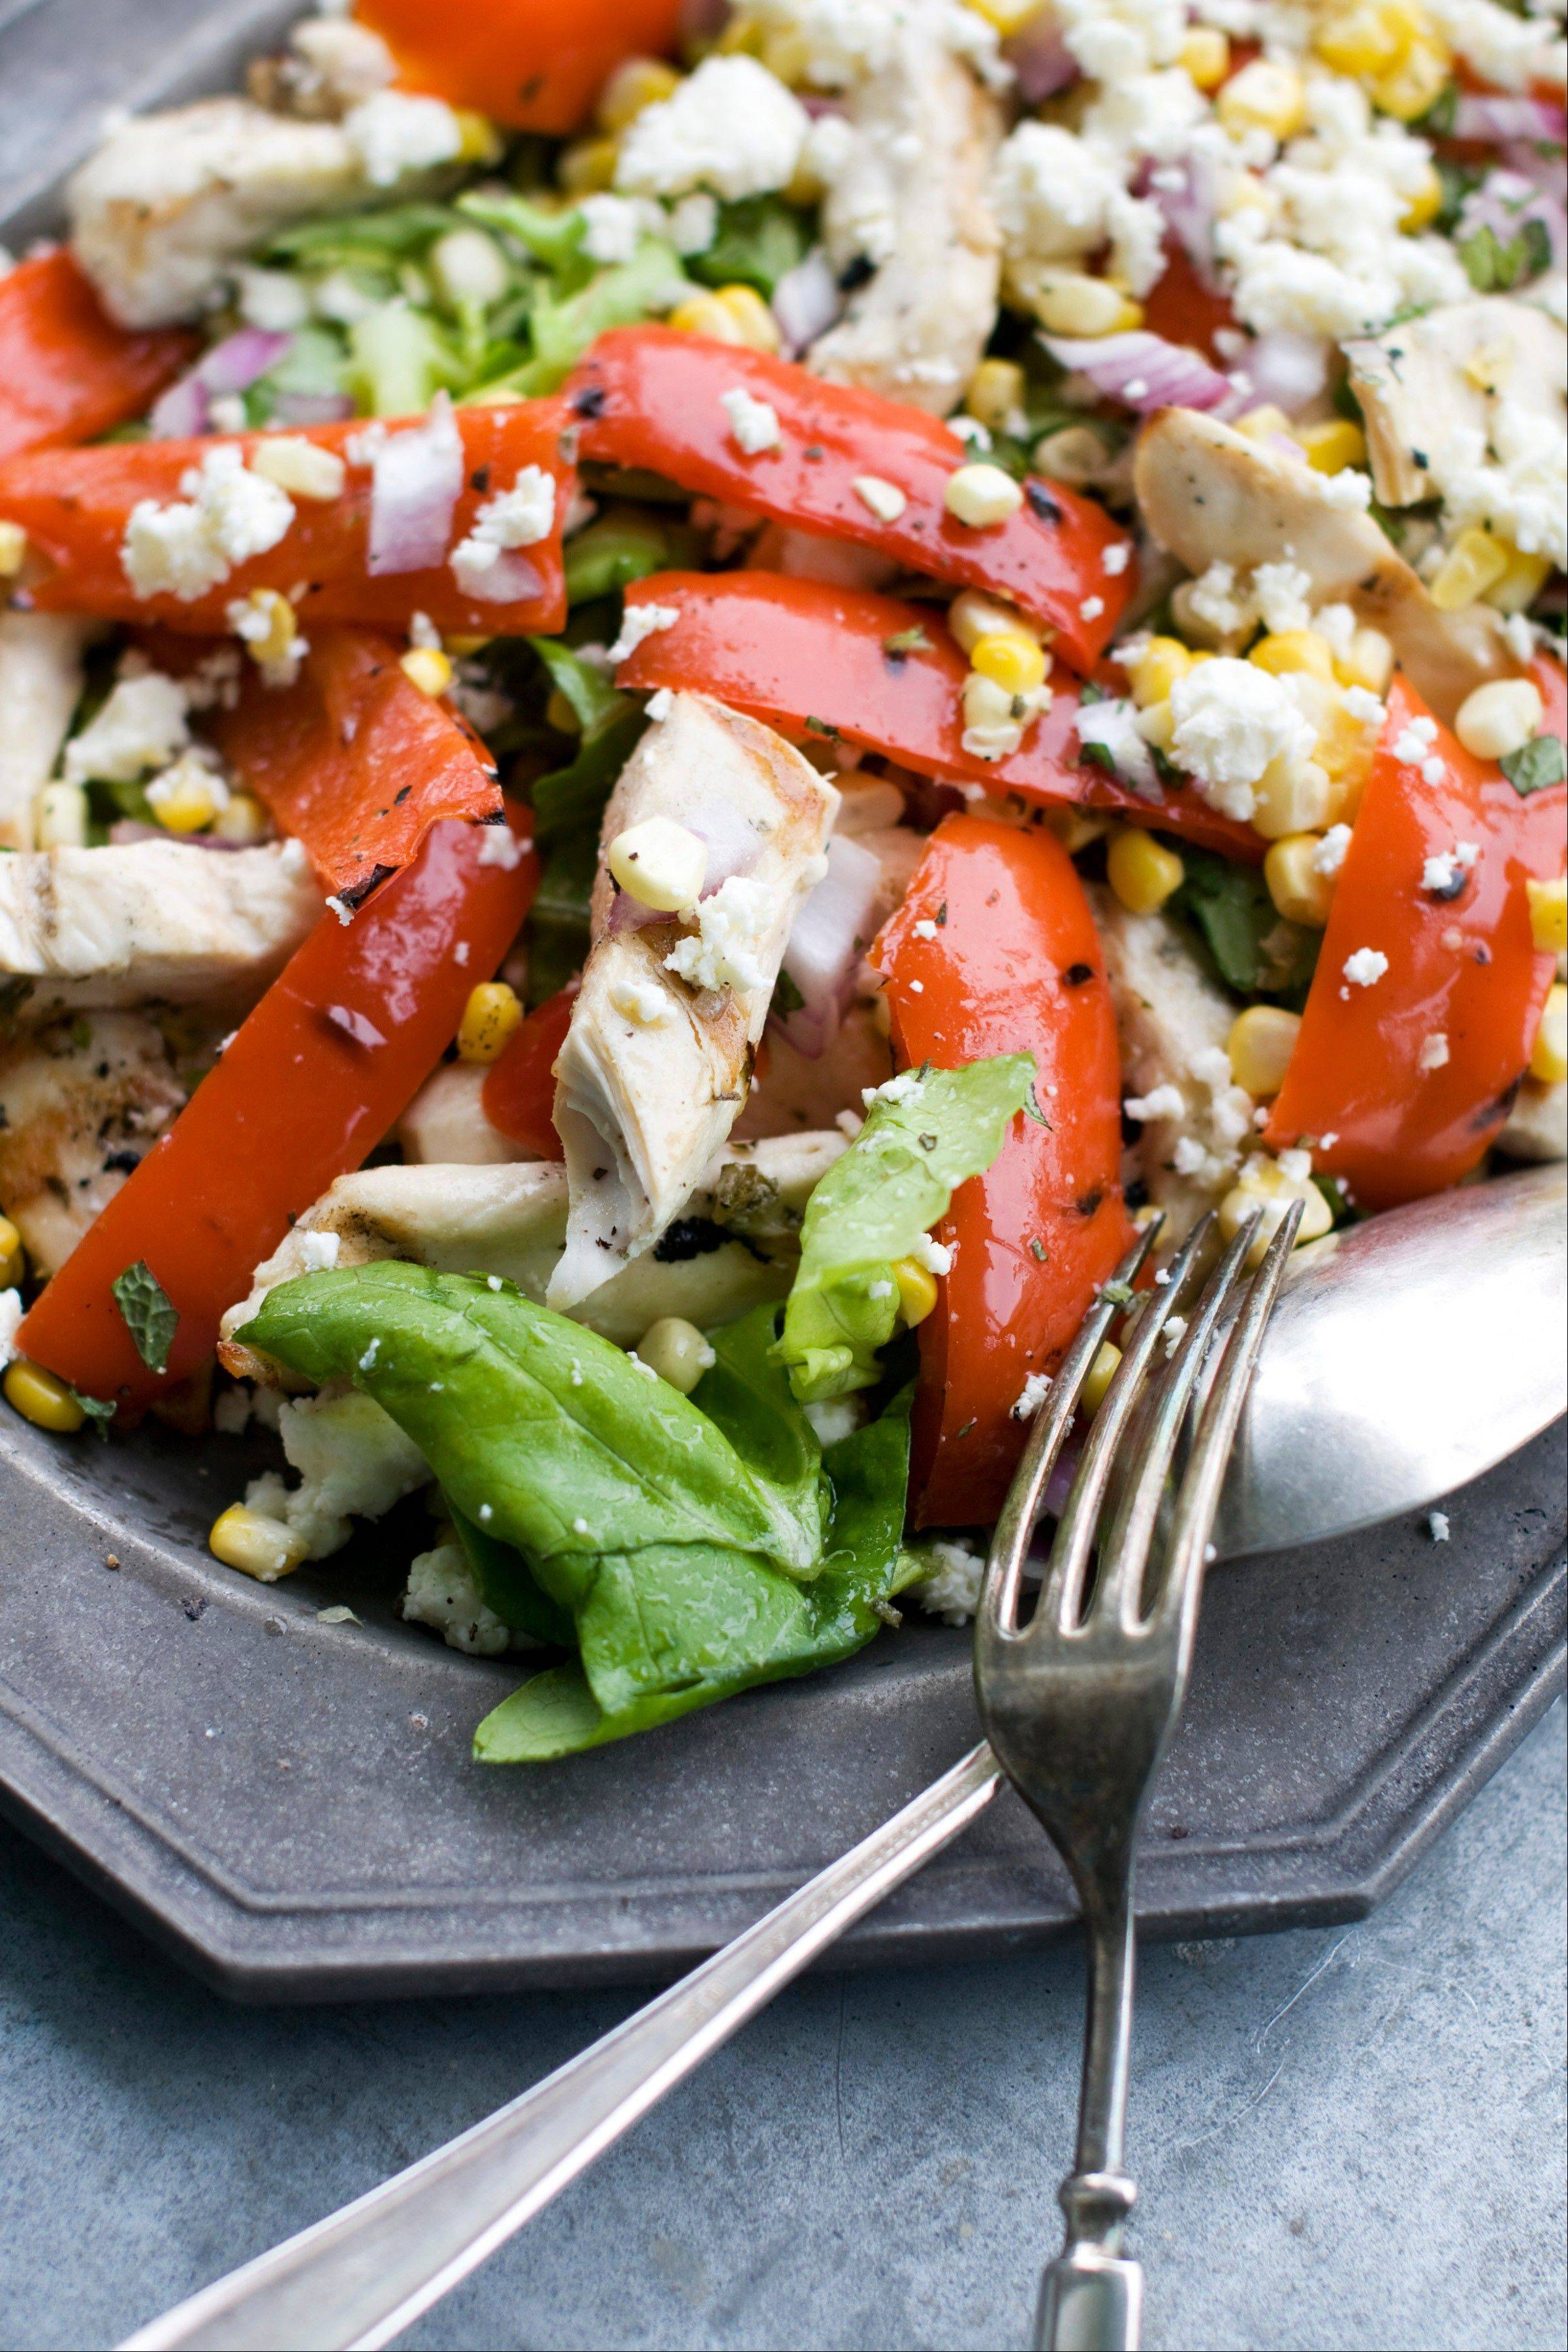 Feel free to adapt this grilled Greek chicken salad to ingredients on hand and to personal preference.